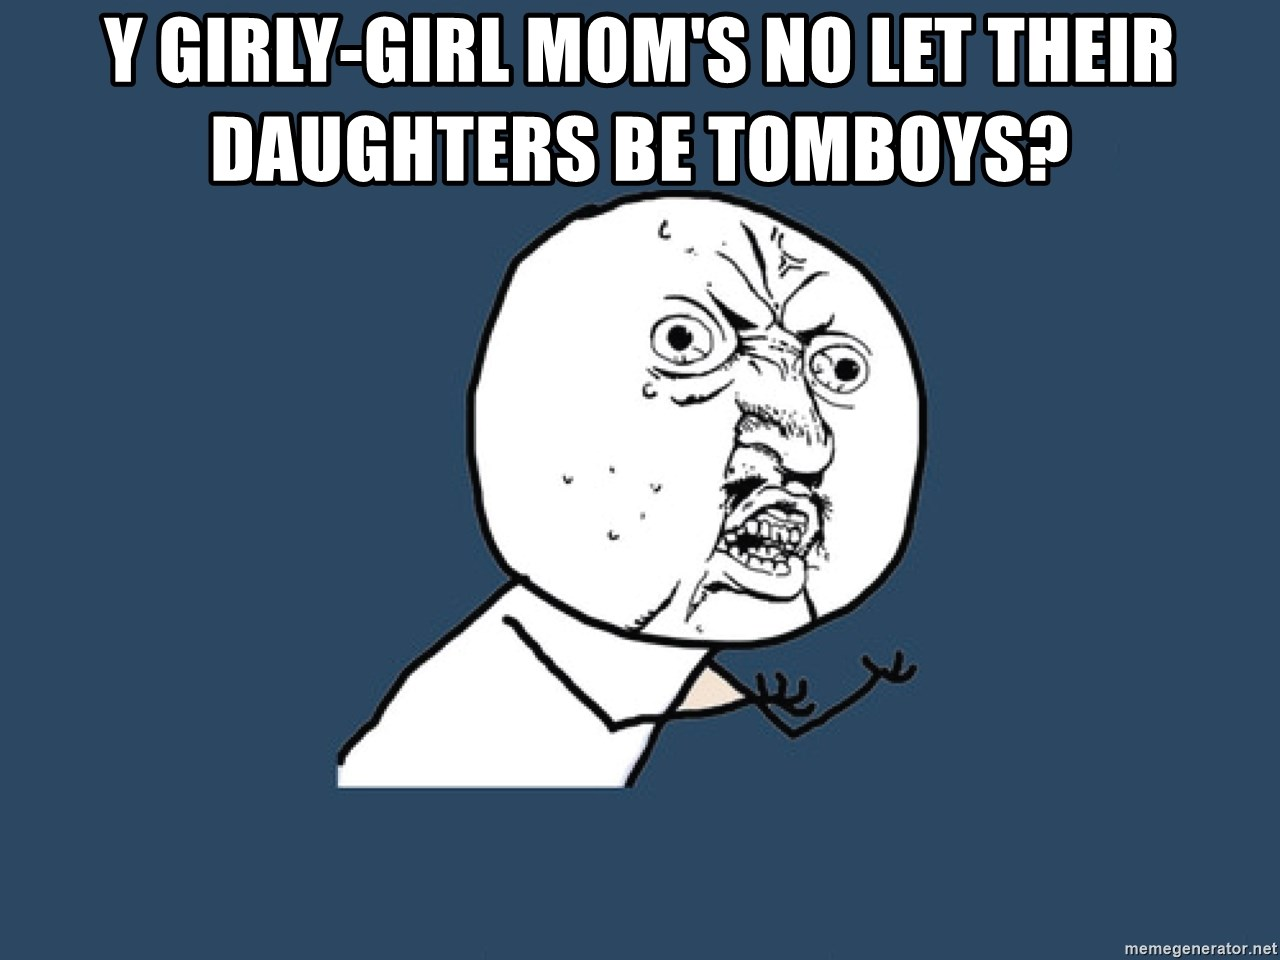 Y U No - Y girly-girl mom's no let their daughters be TOMBOYs?